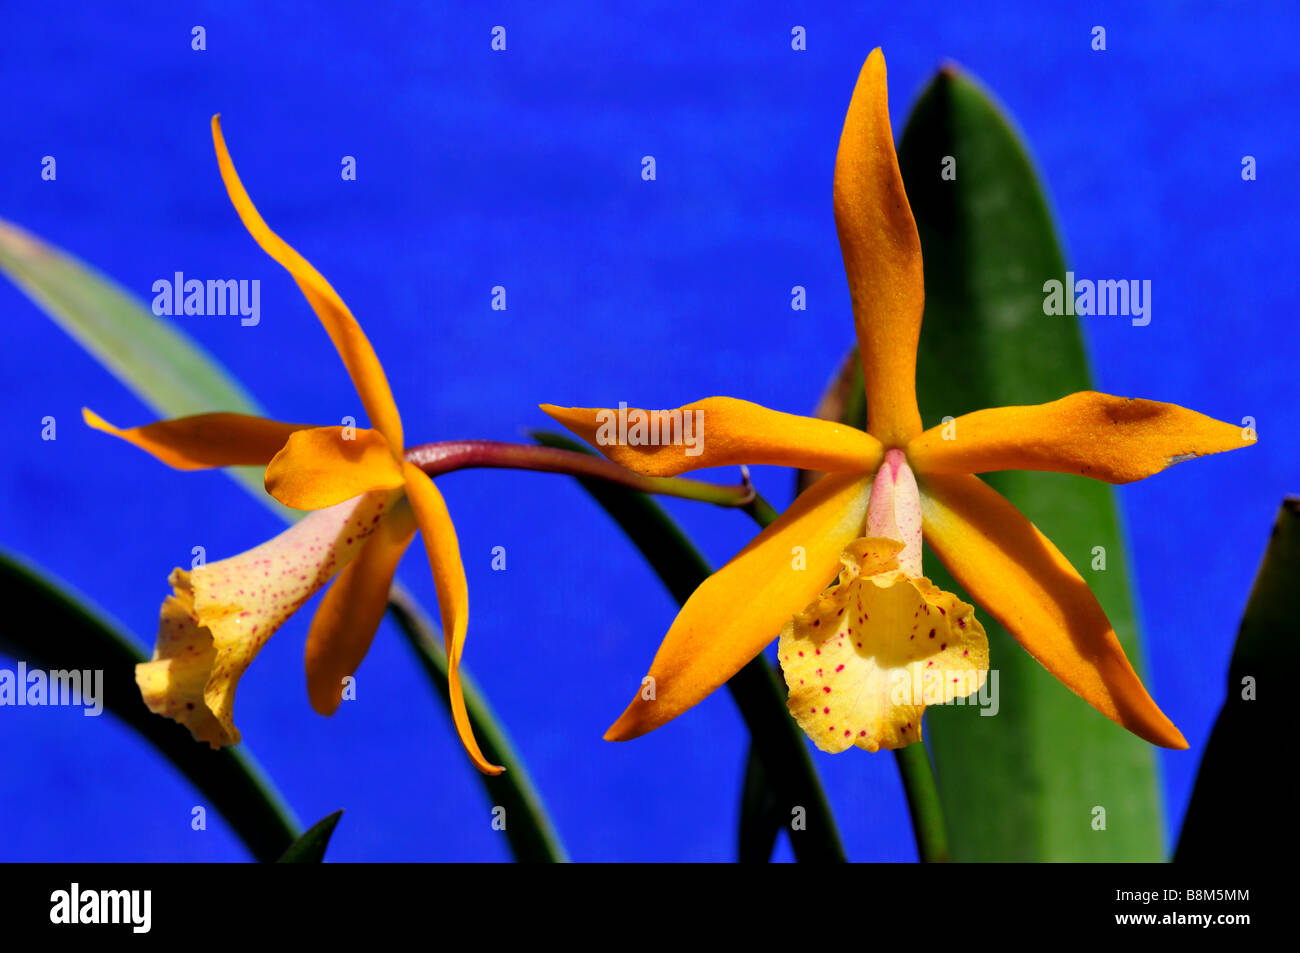 Yellow orchid flowers. - Stock Image